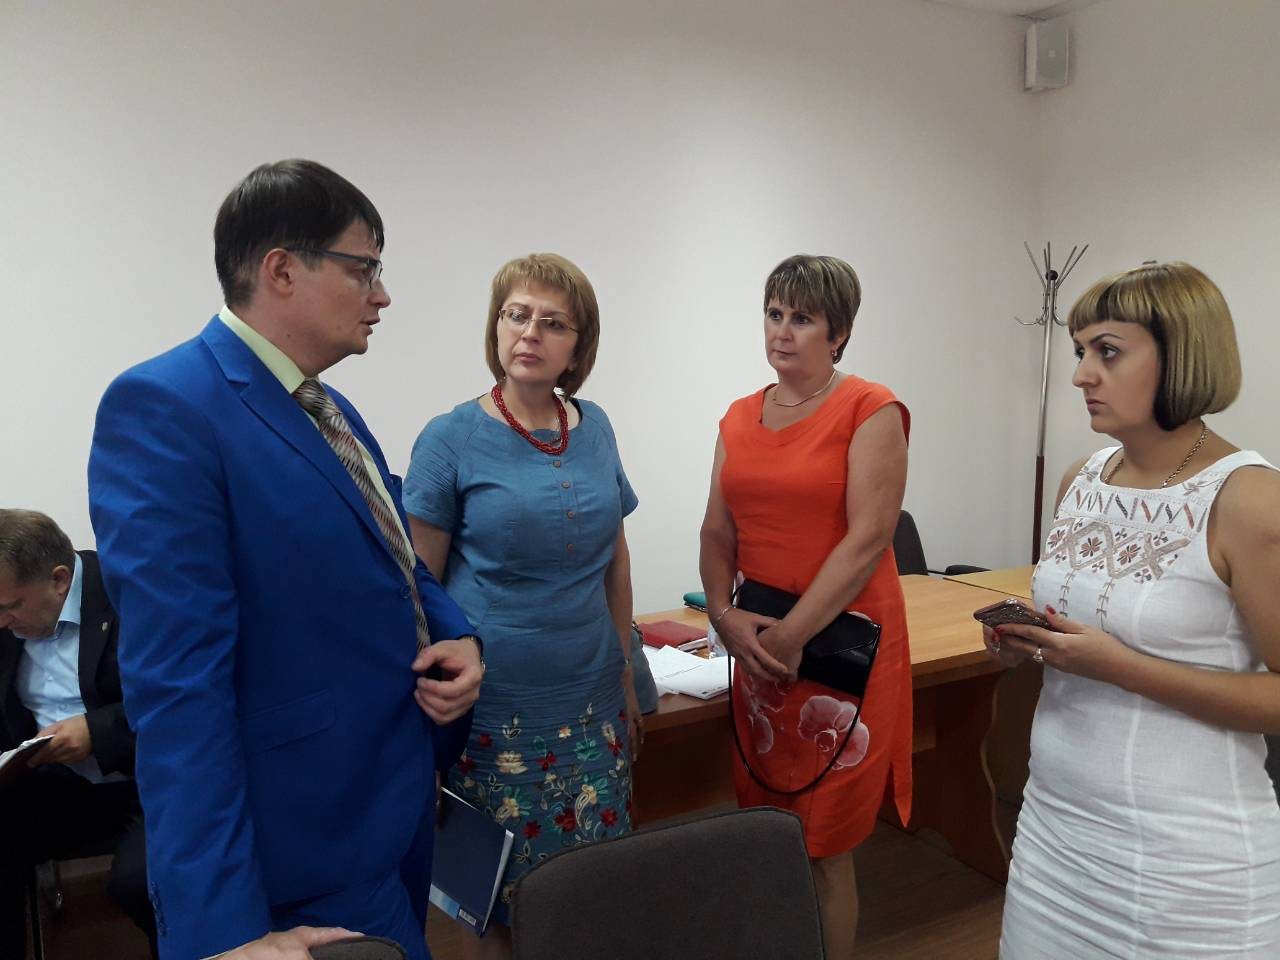 Money followed patients in four hromadas of Dnipropetrovsk Oblast